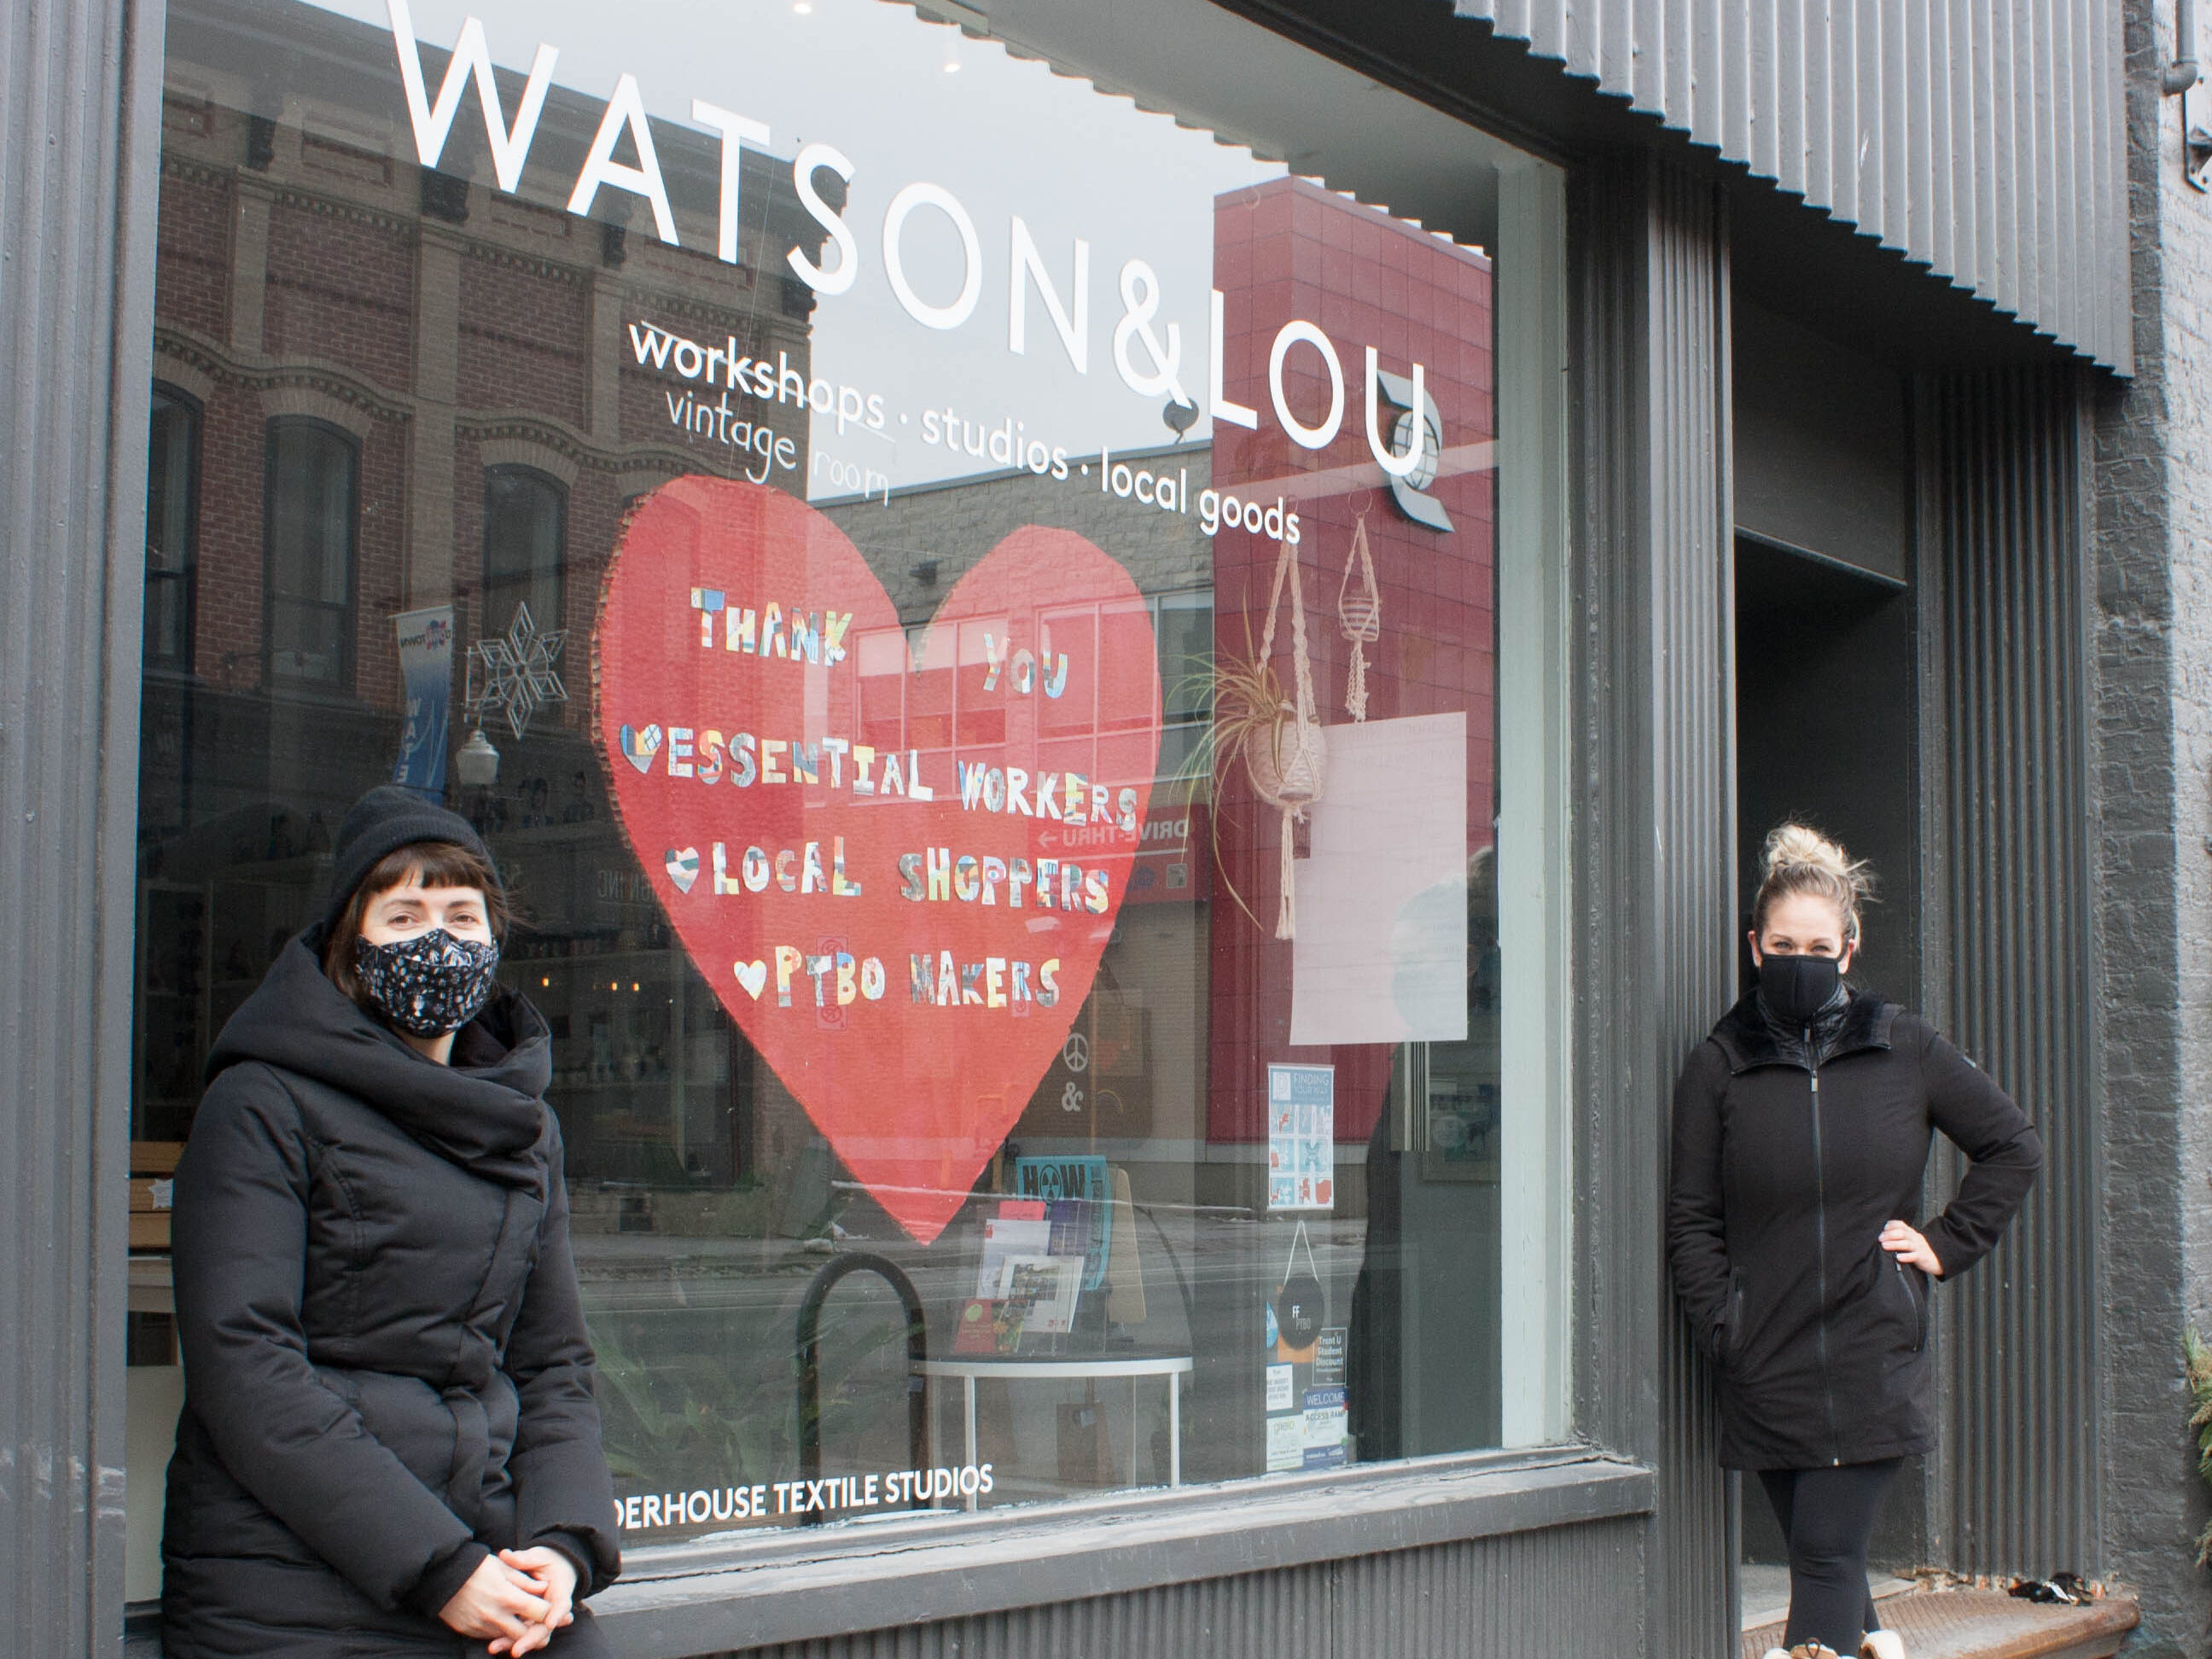 The owners of Watson & Lou stand outside the front window